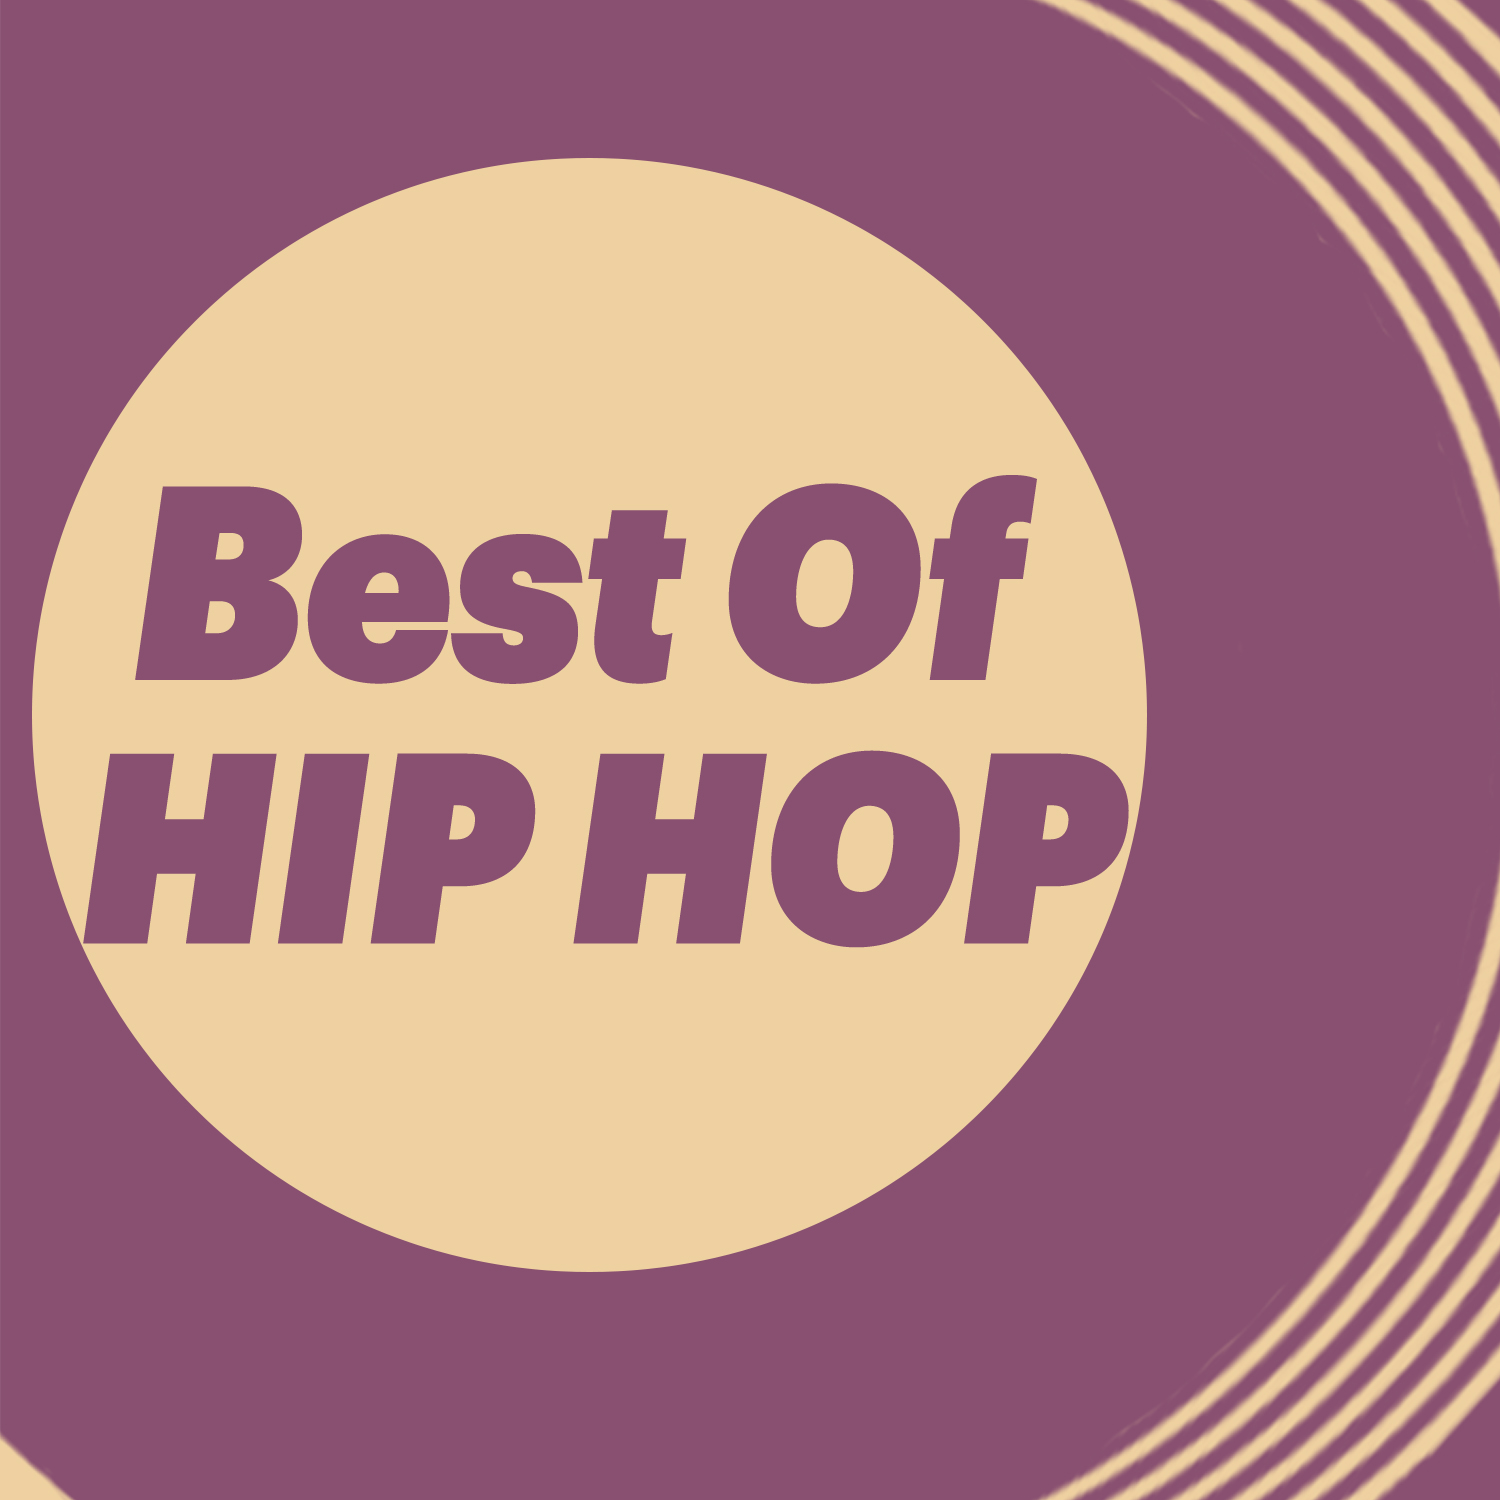 Best of Hip Hop,Songdew